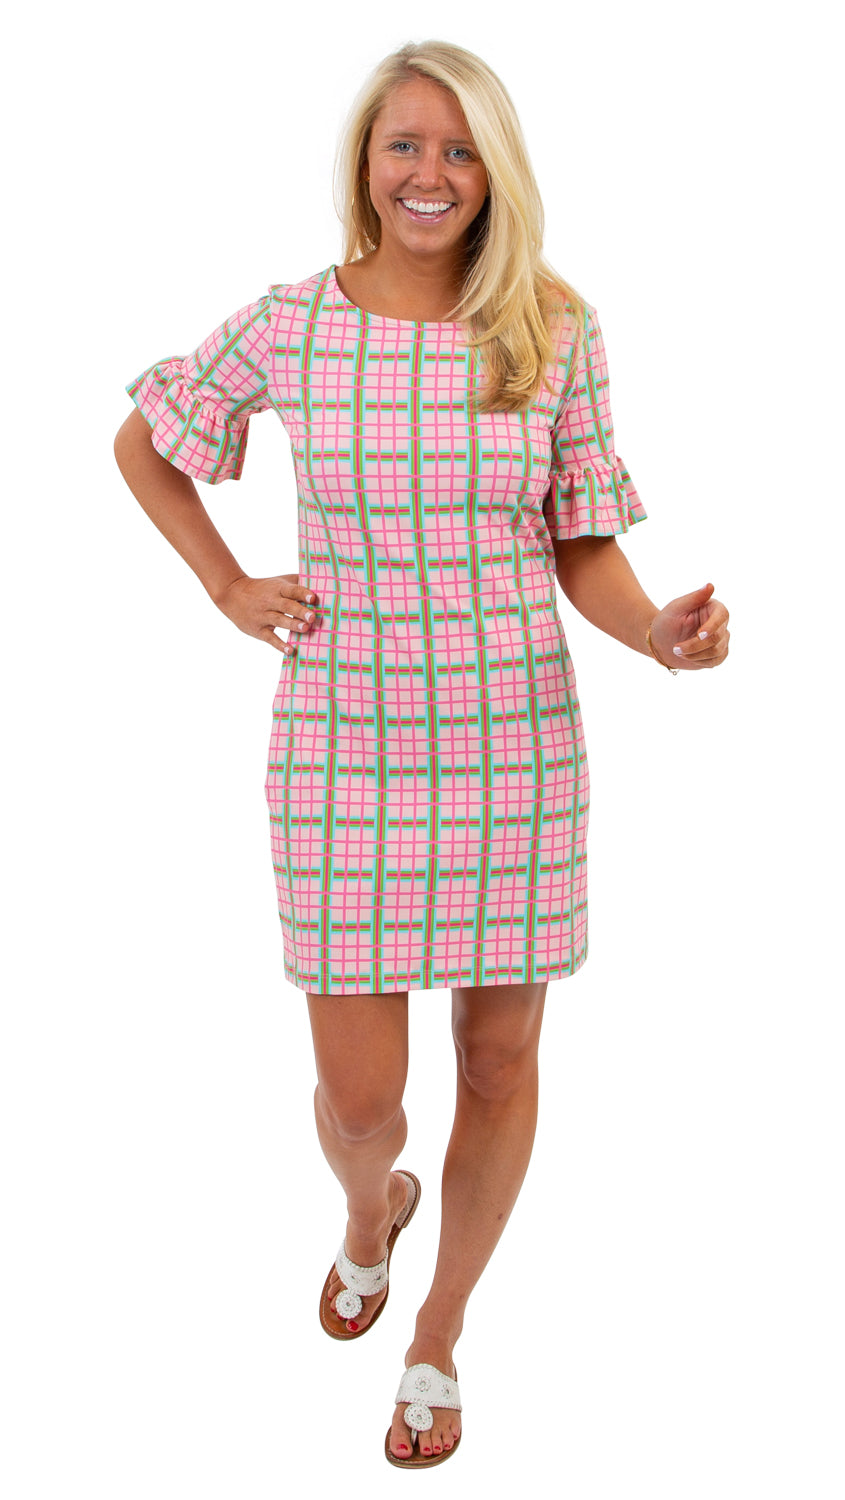 Dockside Dress - Pink/Green Spring Plaid